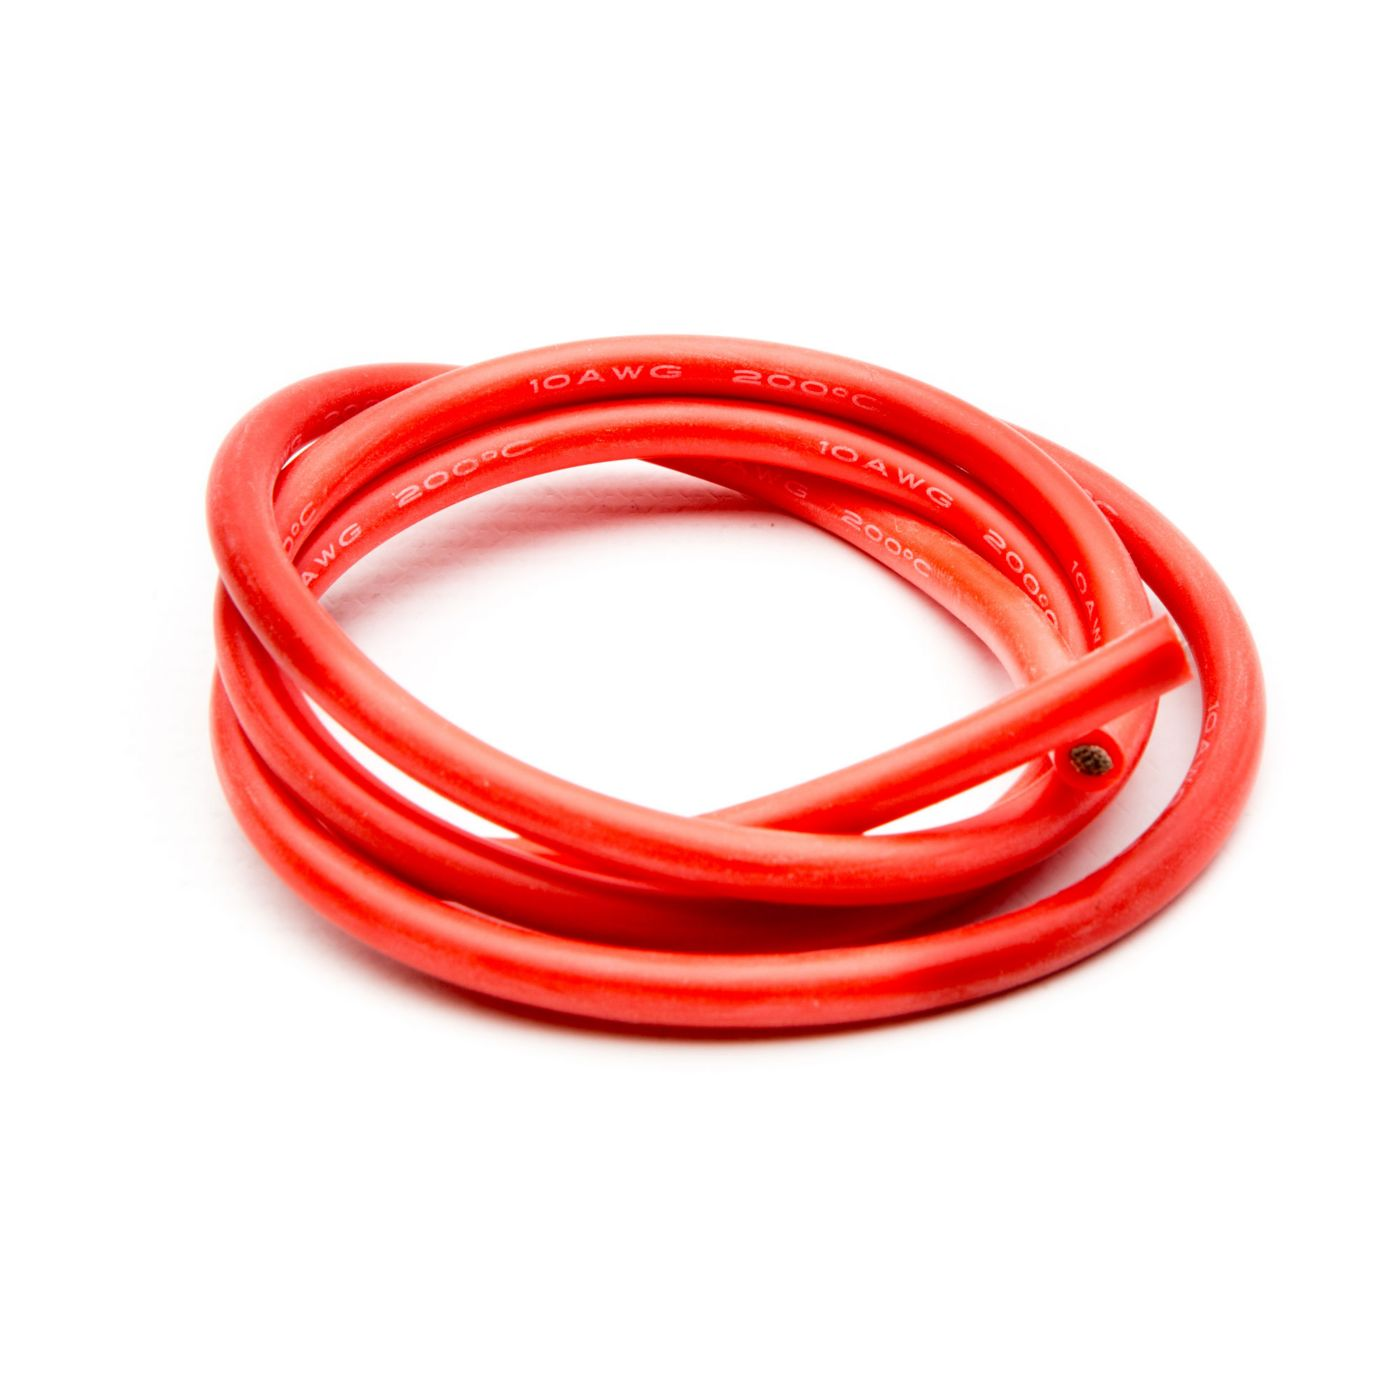 10 AWG Silicone Wire 3', Red